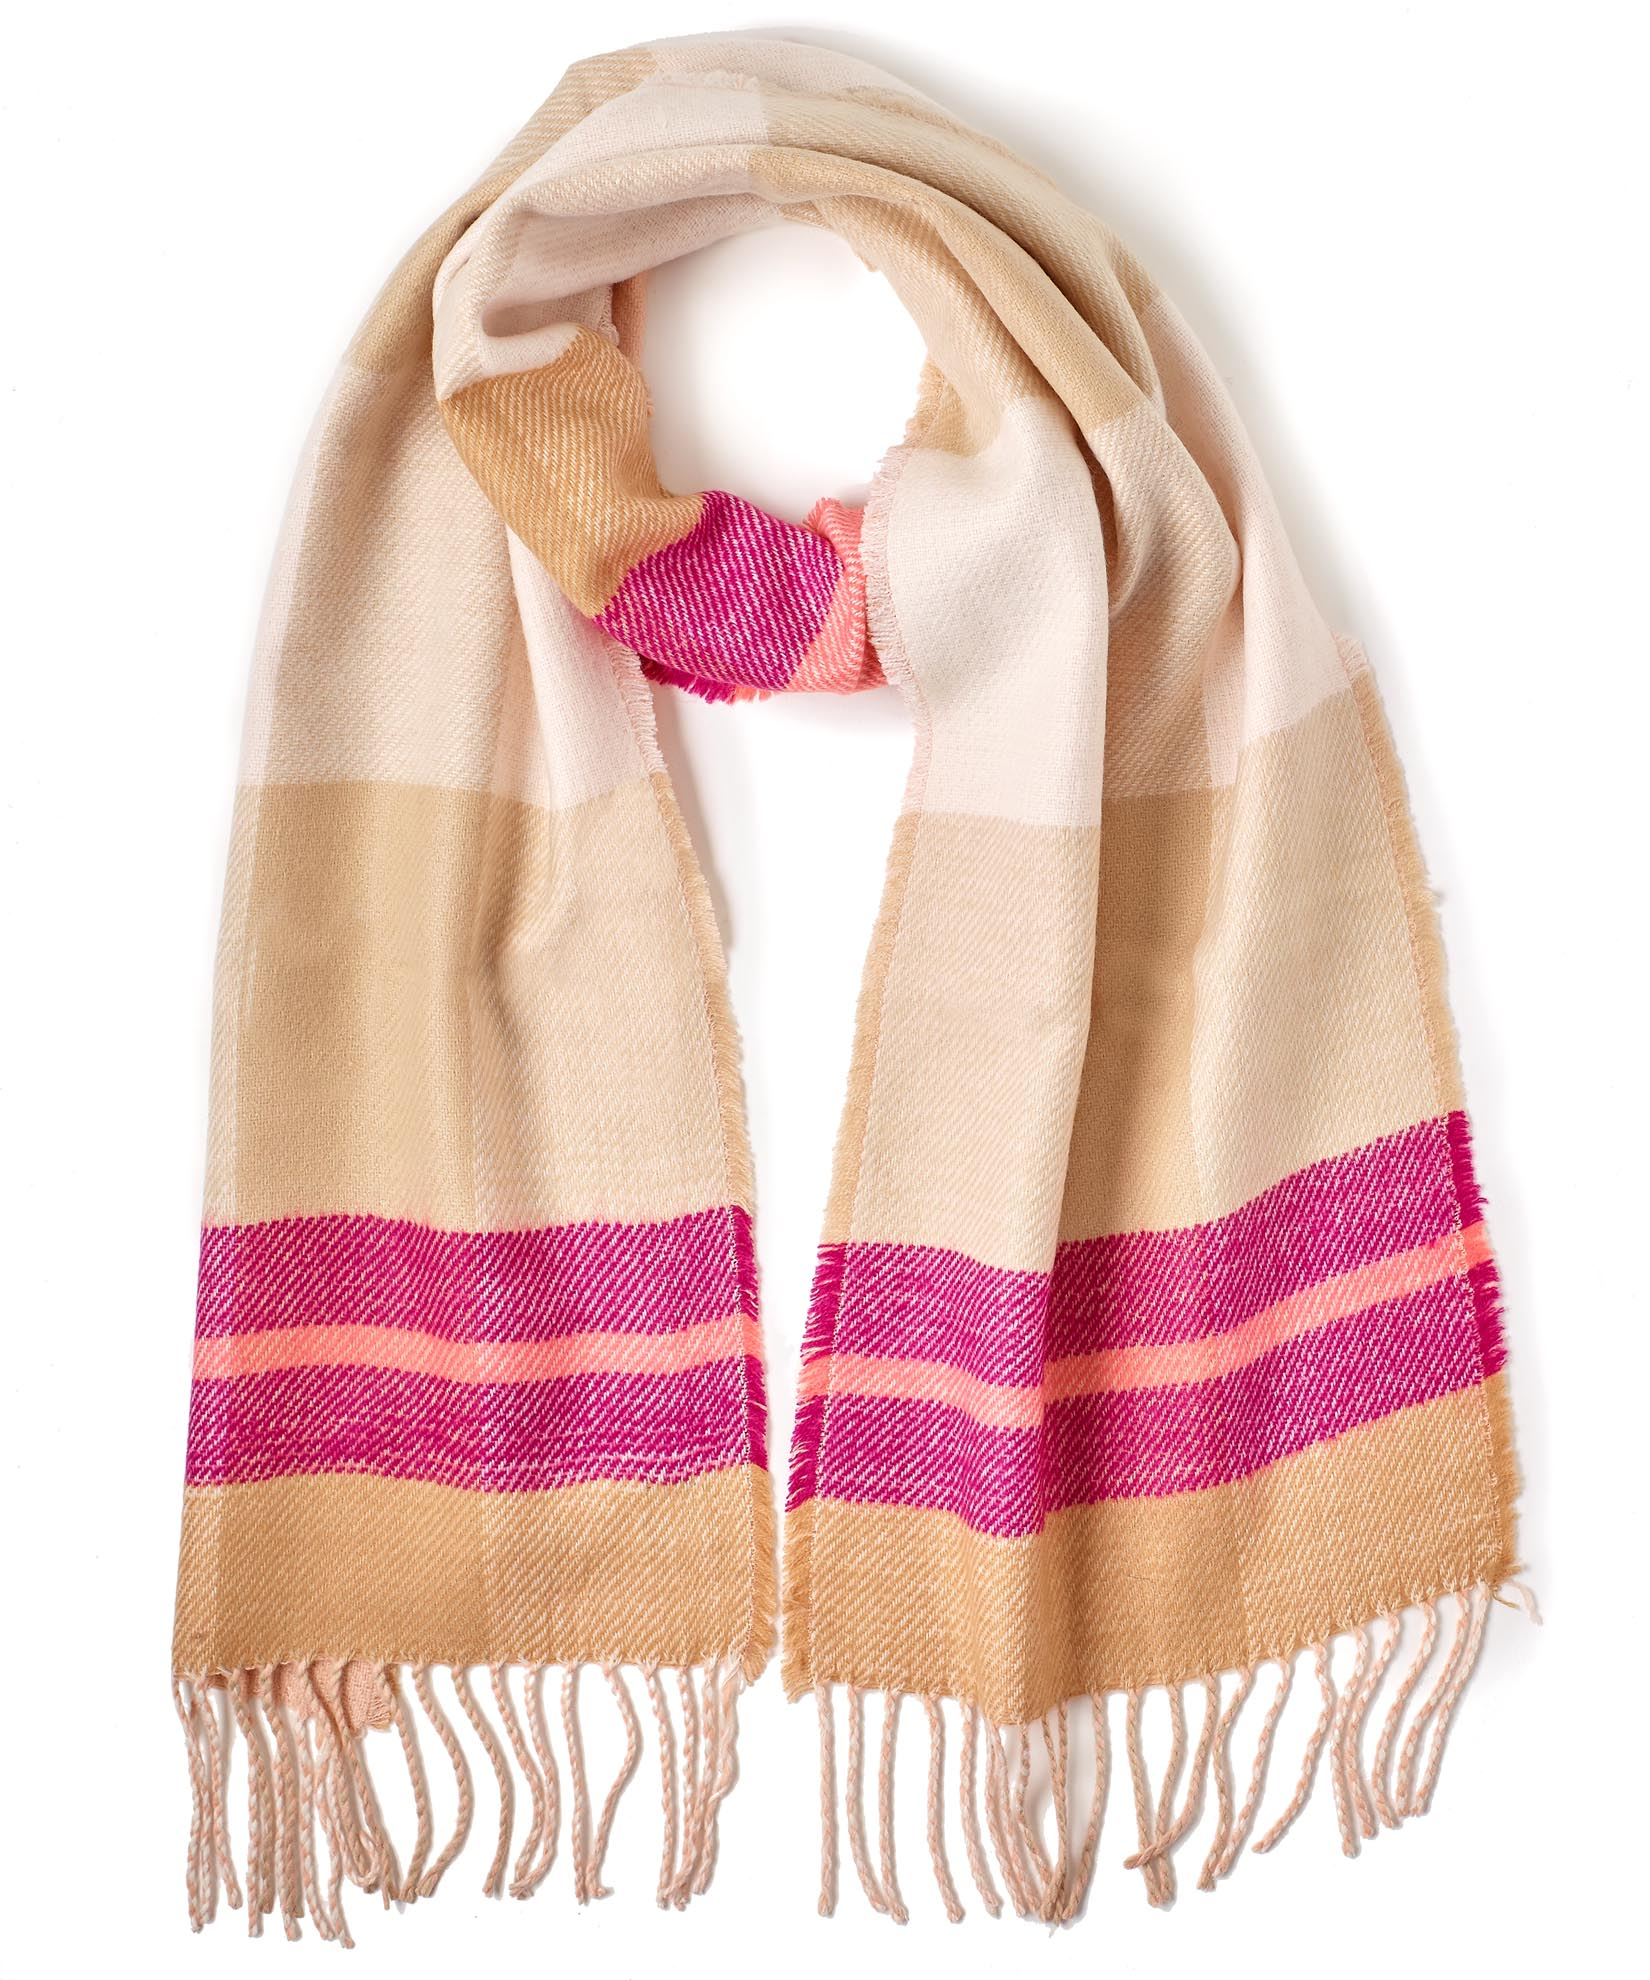 Blush - Reversible Plaid Muffler